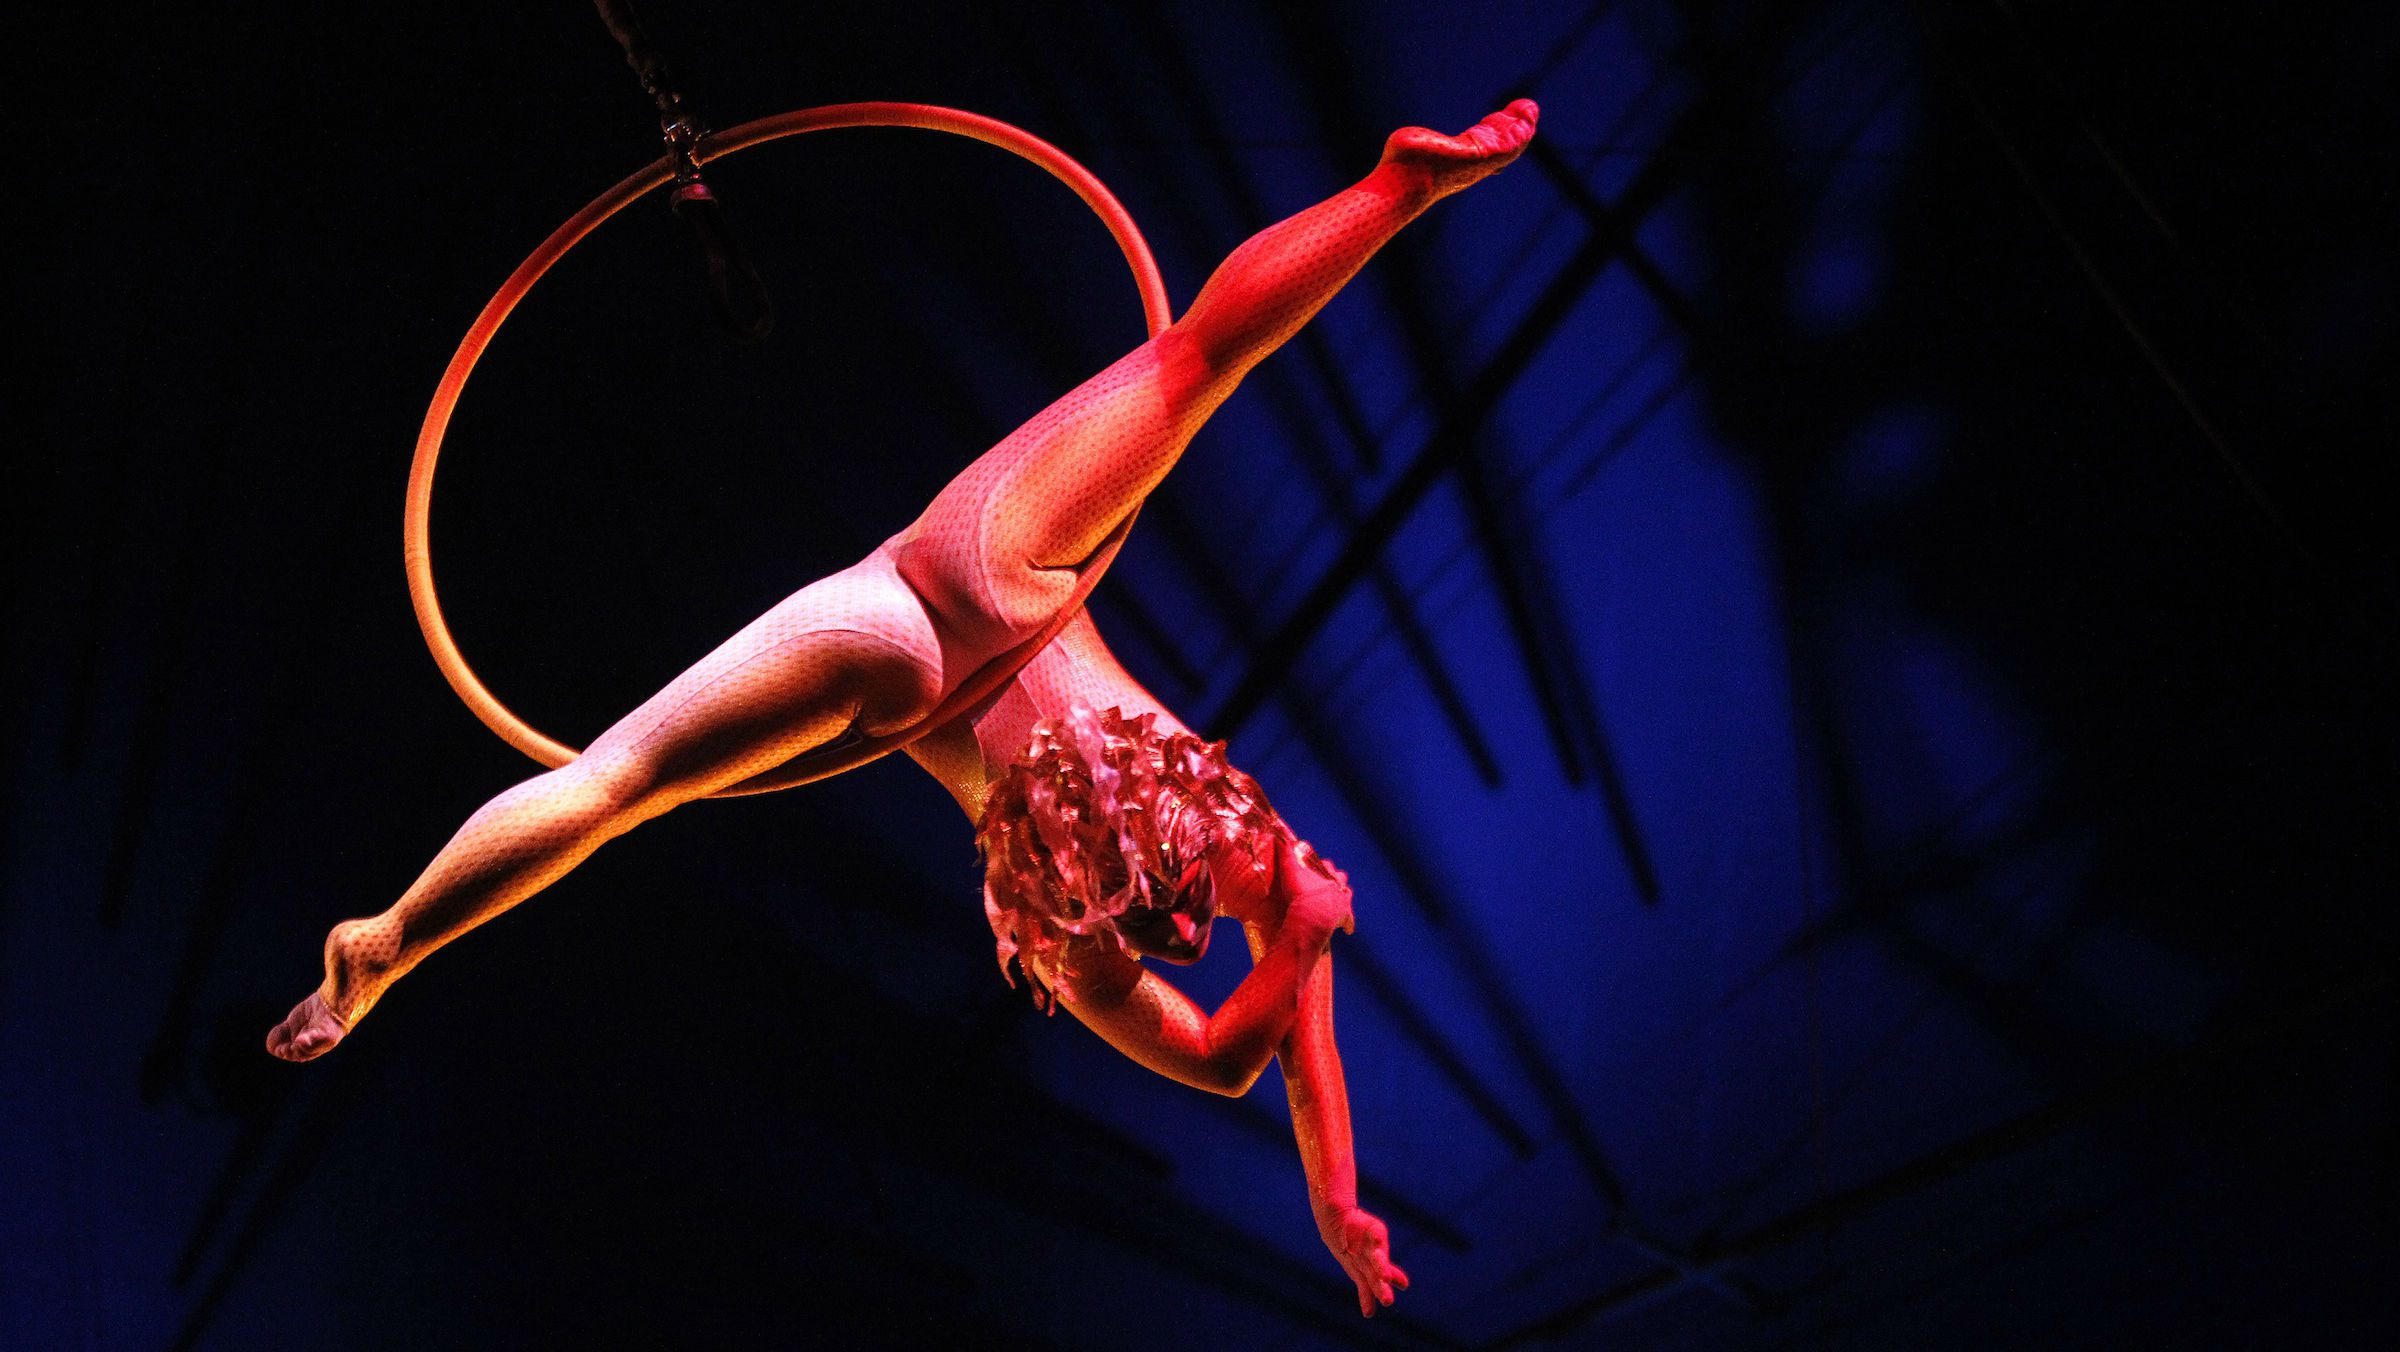 Cirque du Soleil sells a majority stake to investors including Fosun, a Chinese conglomerate.